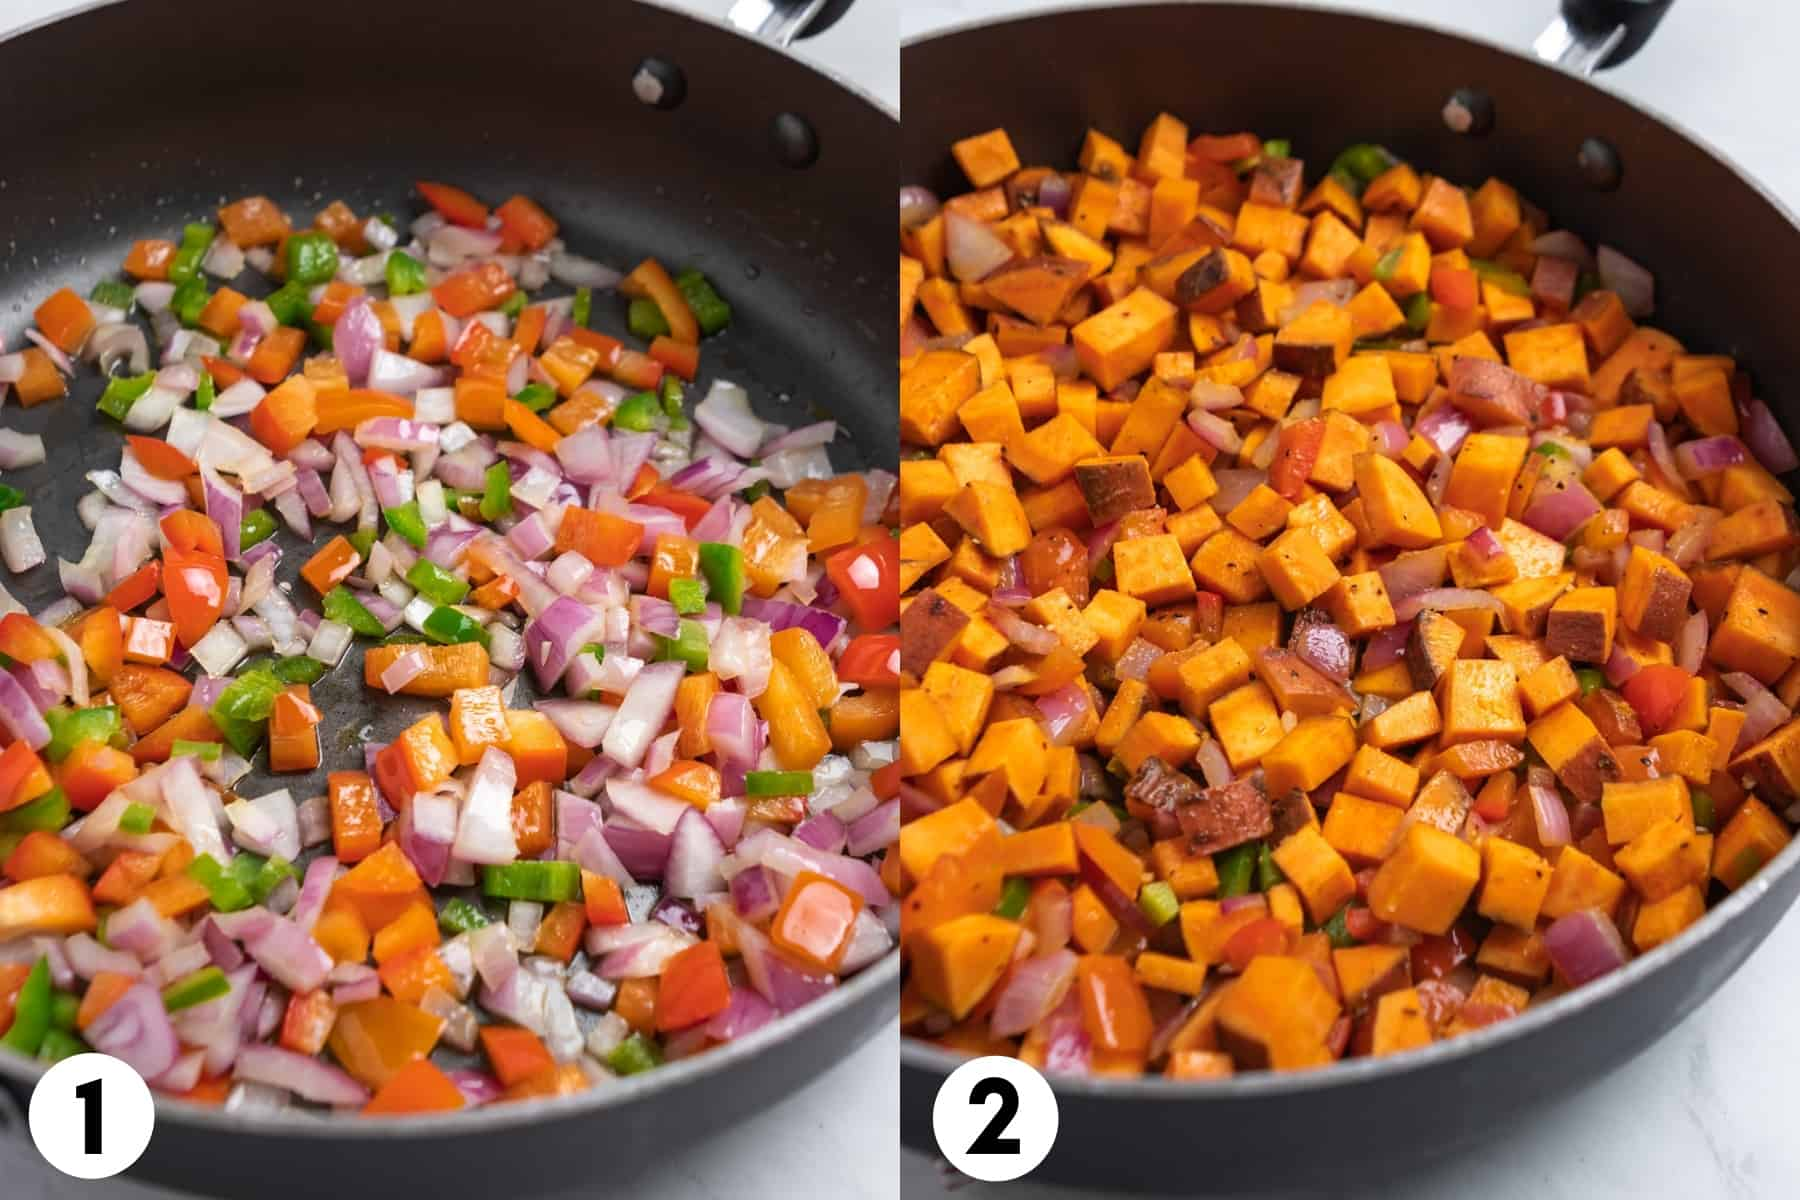 Skillet with onion and peppers and then with sweet potatoes and spices added in.